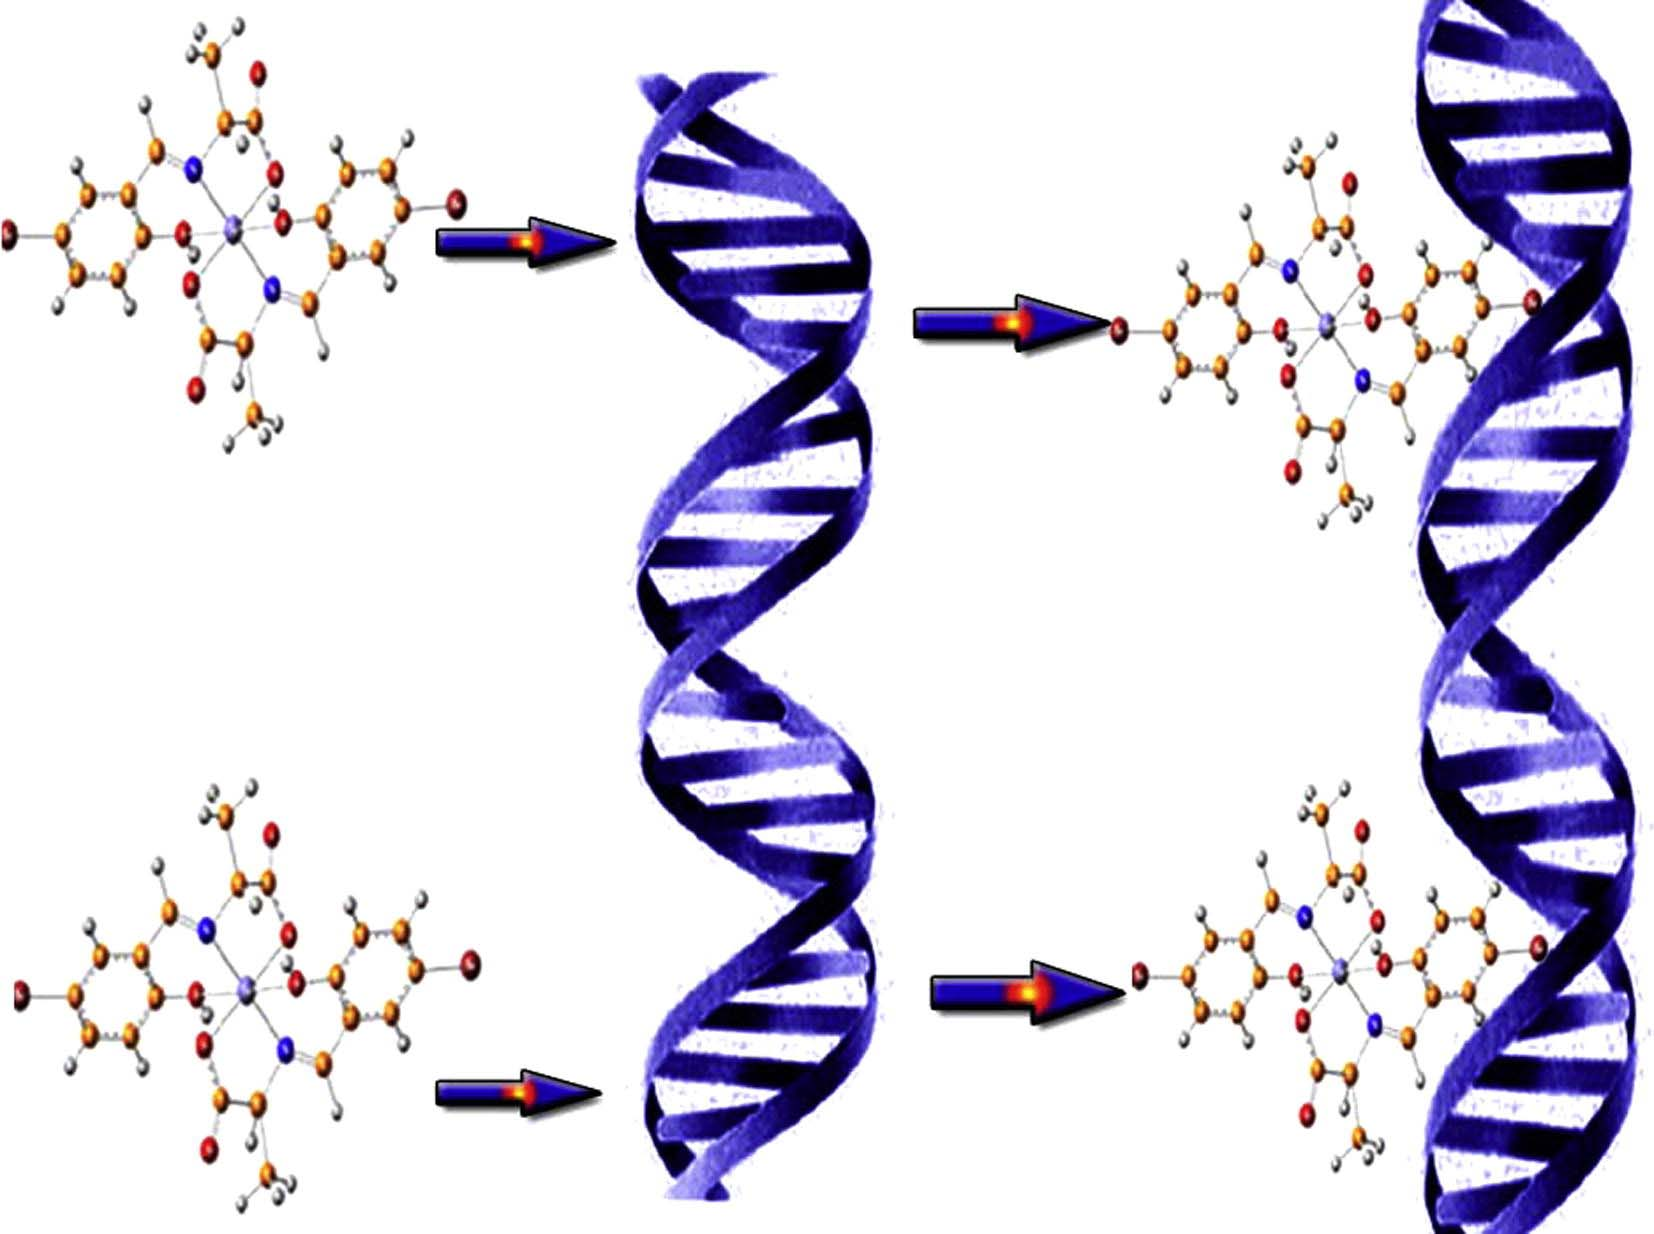 DNA binding ability mode, spectroscopic studies, hydrophobicity, and in vitro antibacterial evaluation of some new Fe(II) complexes bearing ONO donors amino acid Schiff bases